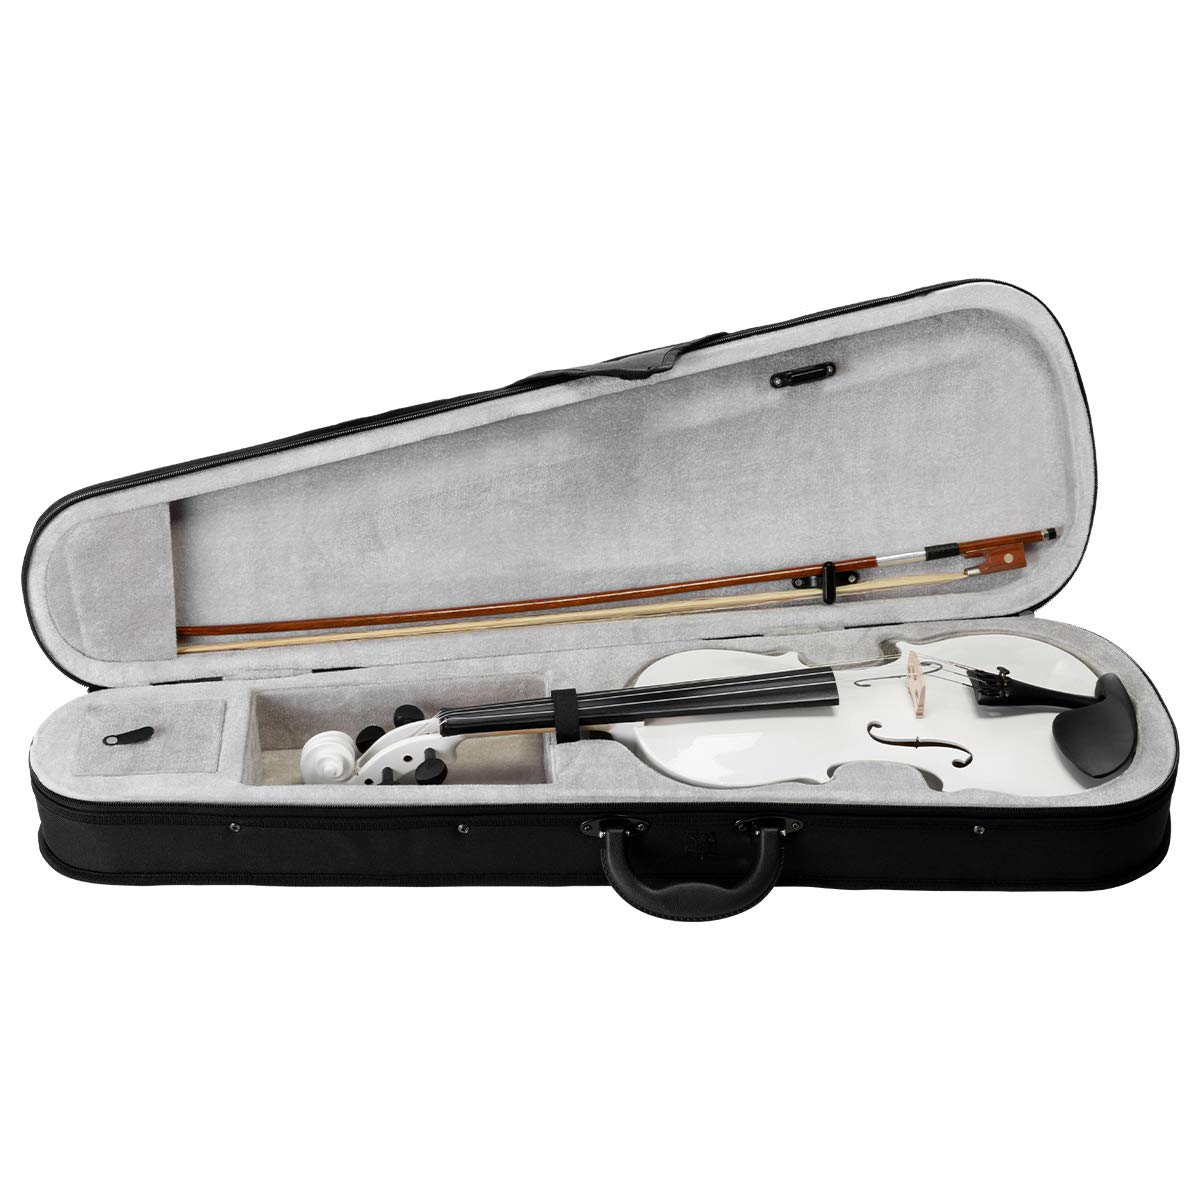 ARTALL 4/4 Handmade Student Acoustic Violin Beginner Pack with Bow, Hard Case, Chin Rest, Tuner, Spare Strings, Rosin and Bridge, Glossy White by ARTALL (Image #6)